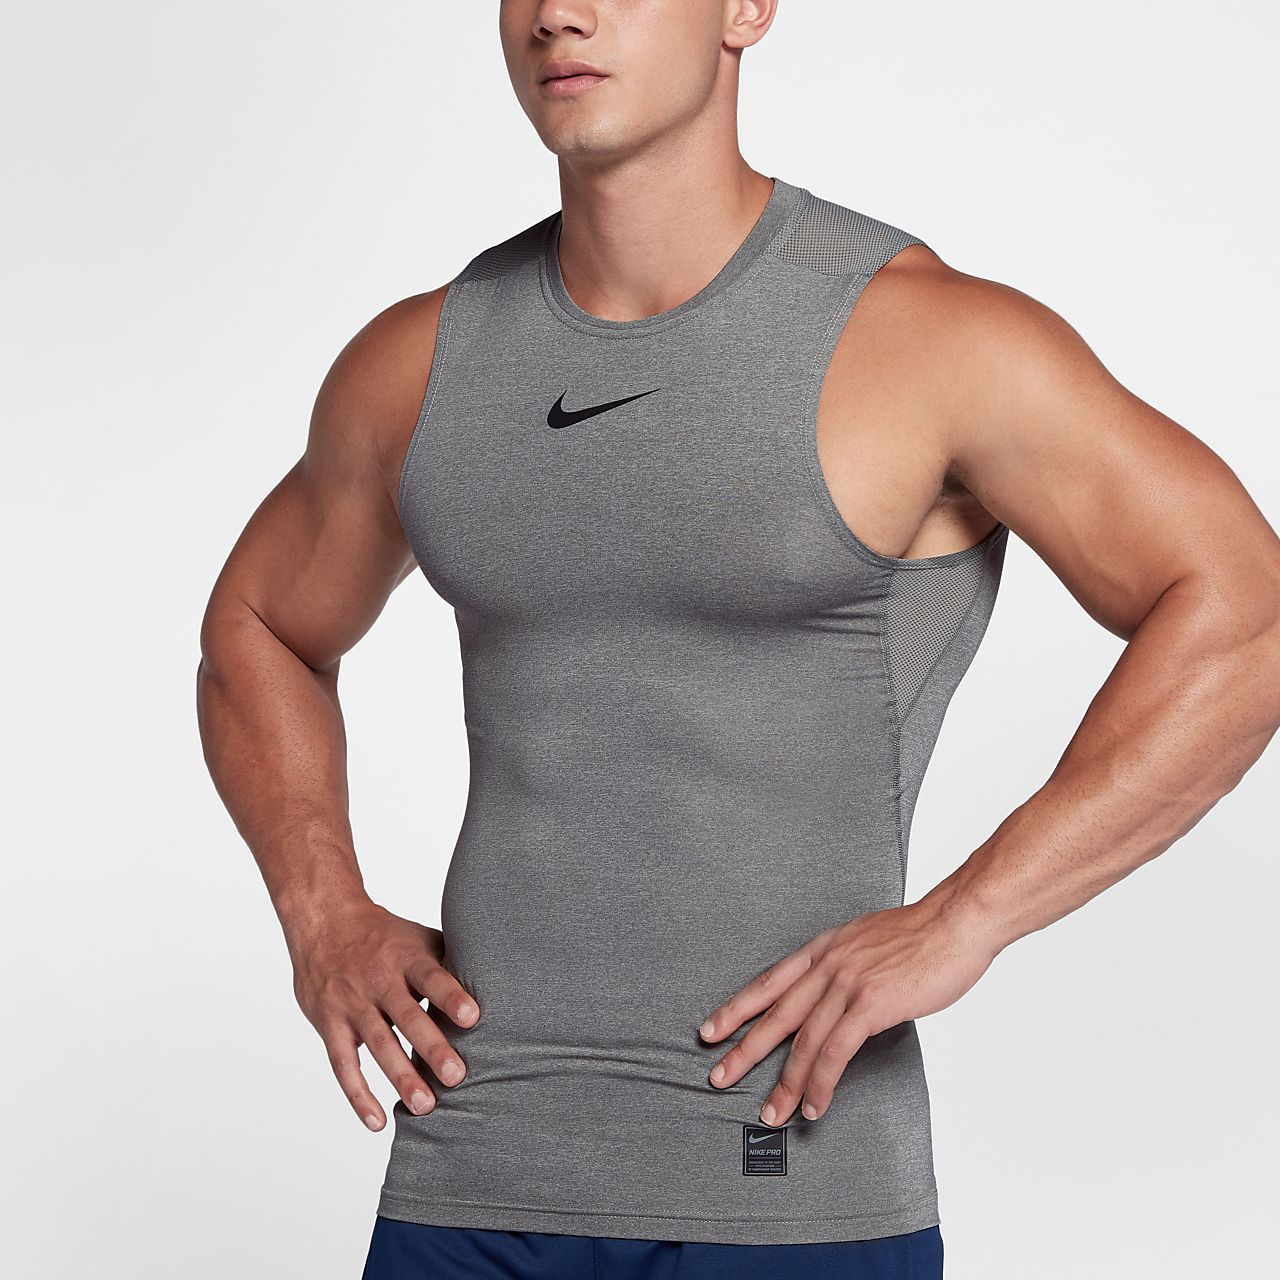 8ebcfdbf Nike Pro Men's Sleeveless Training Top. Nike.com GB